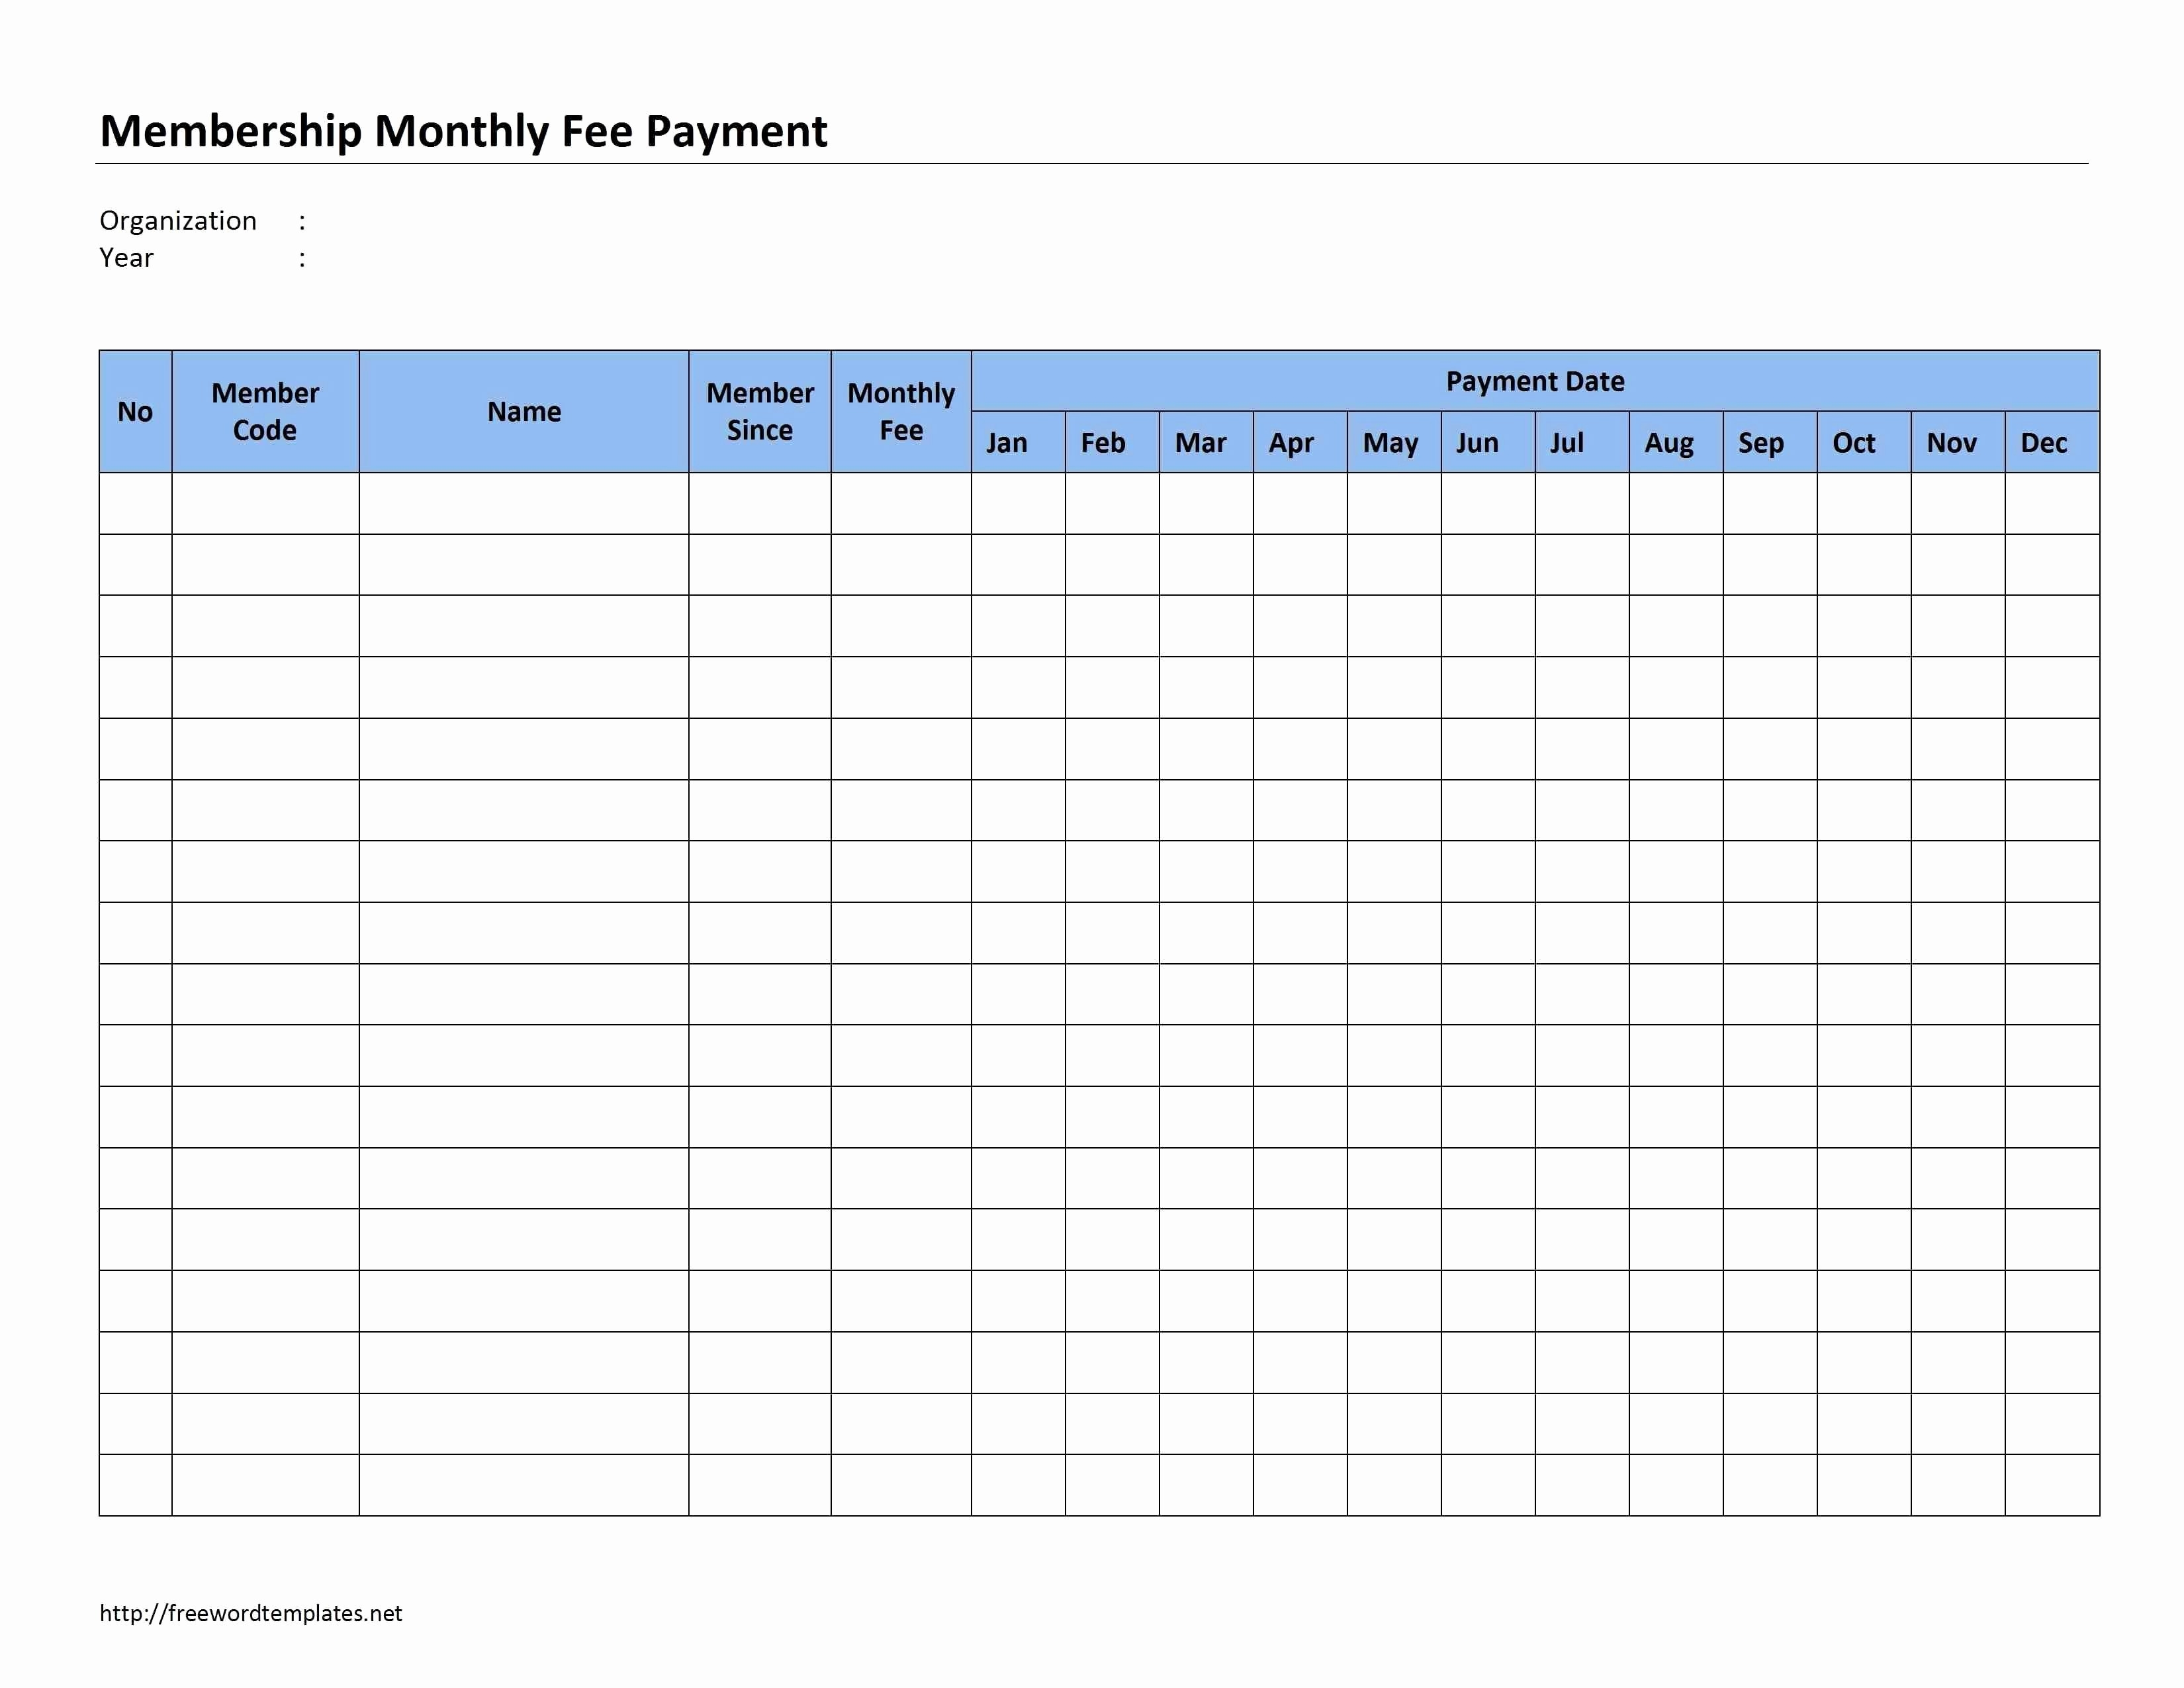 004 Monthly Bill Organizer Template Excel Free Printable Payment regarding Free Bill Organizer Template Downloads